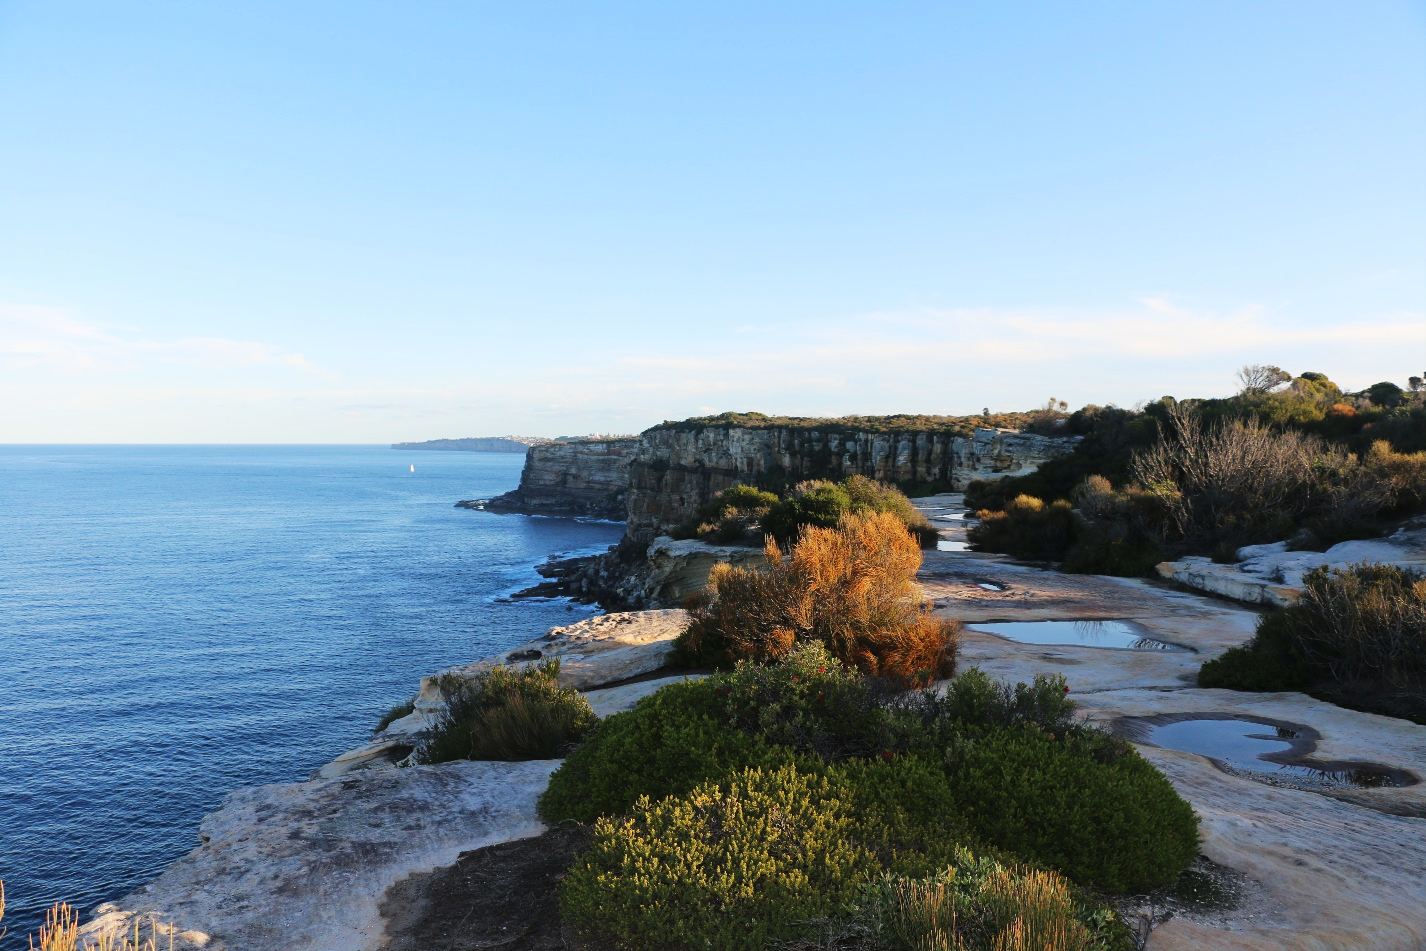 North Head is a patch of isolated habitat that is almost completely surrounded by water – it has bandicoots literally living on the 'edge'.